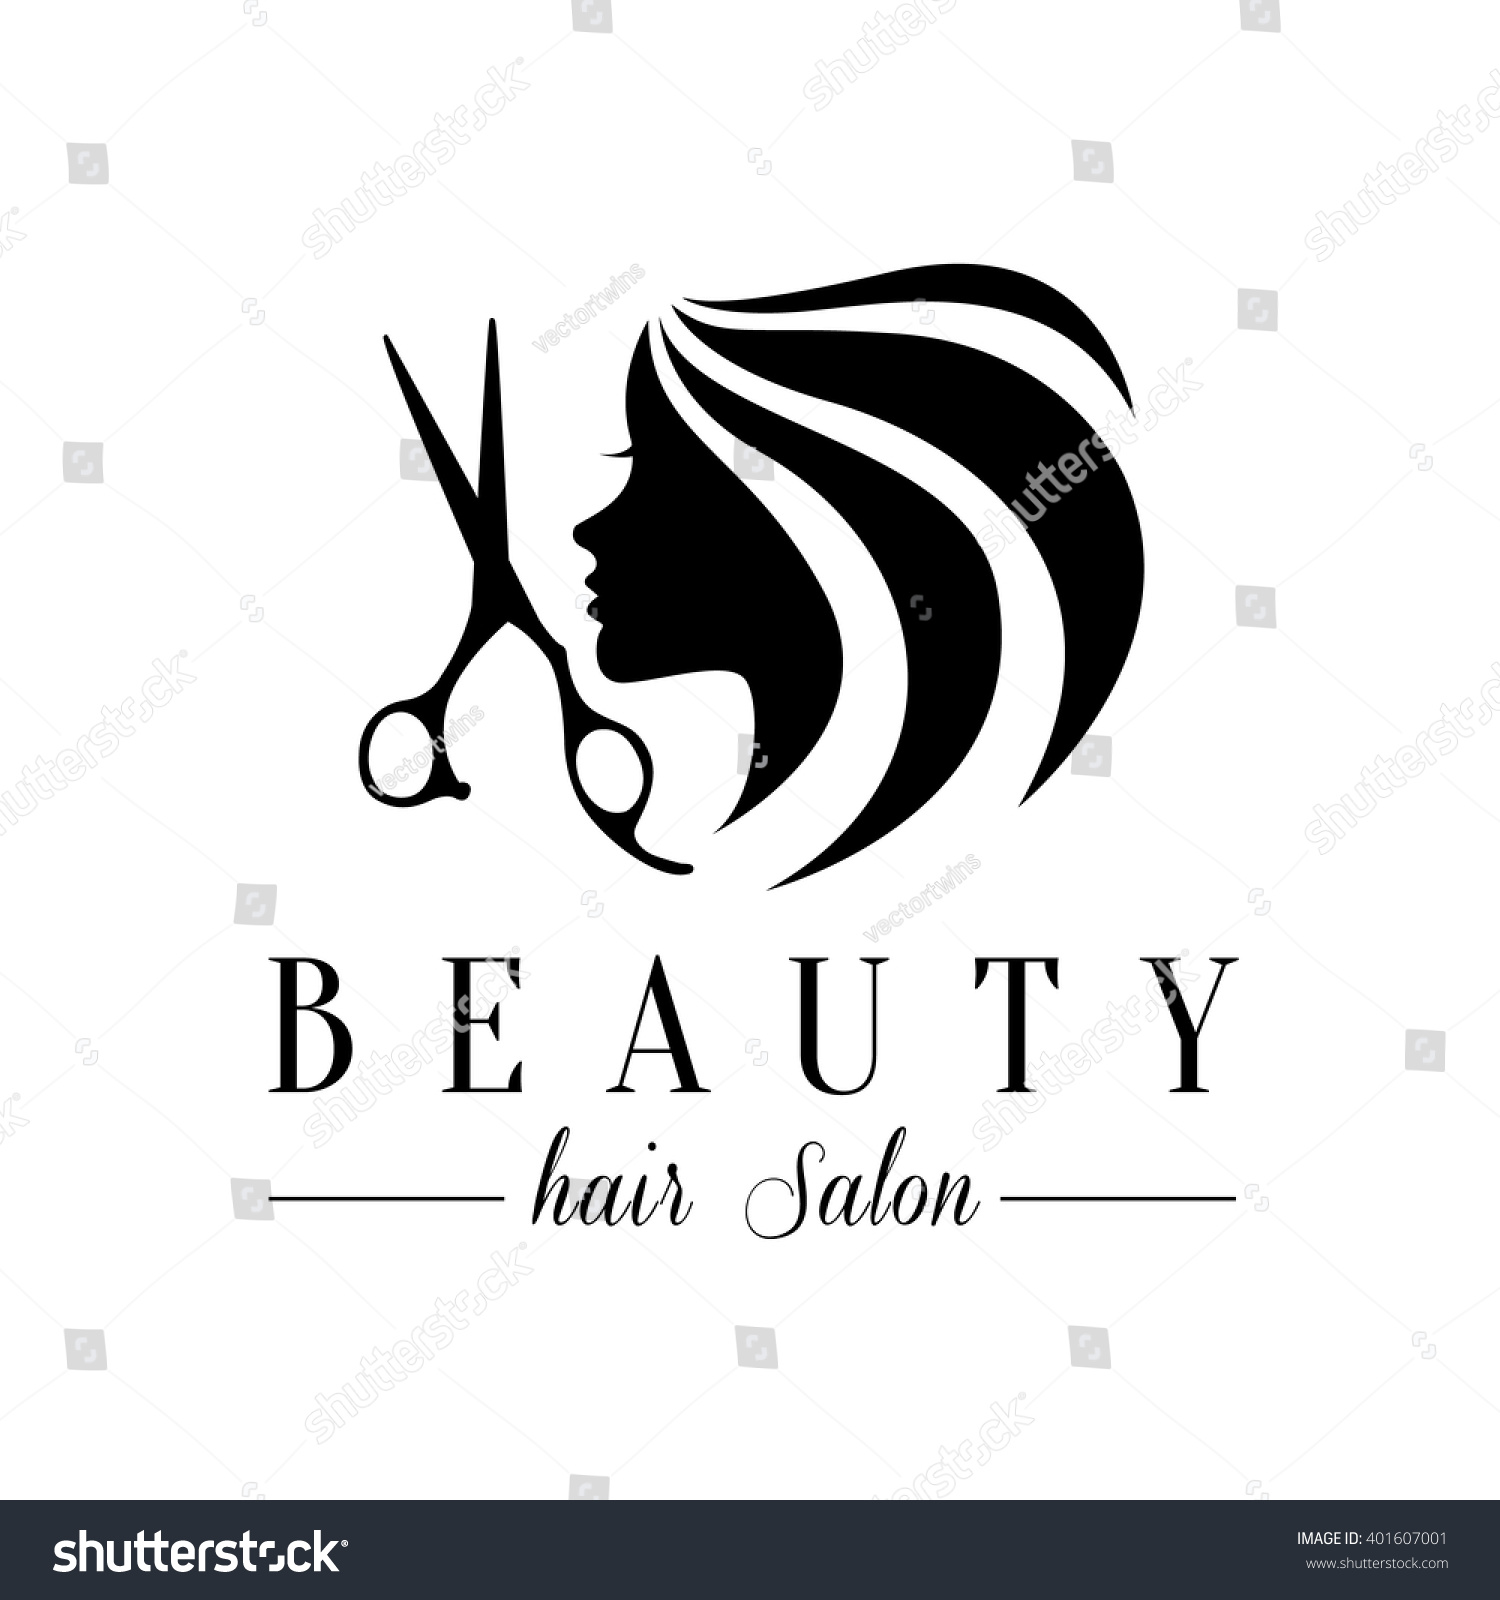 Hair Salon Logos Unlimited Clipart Design